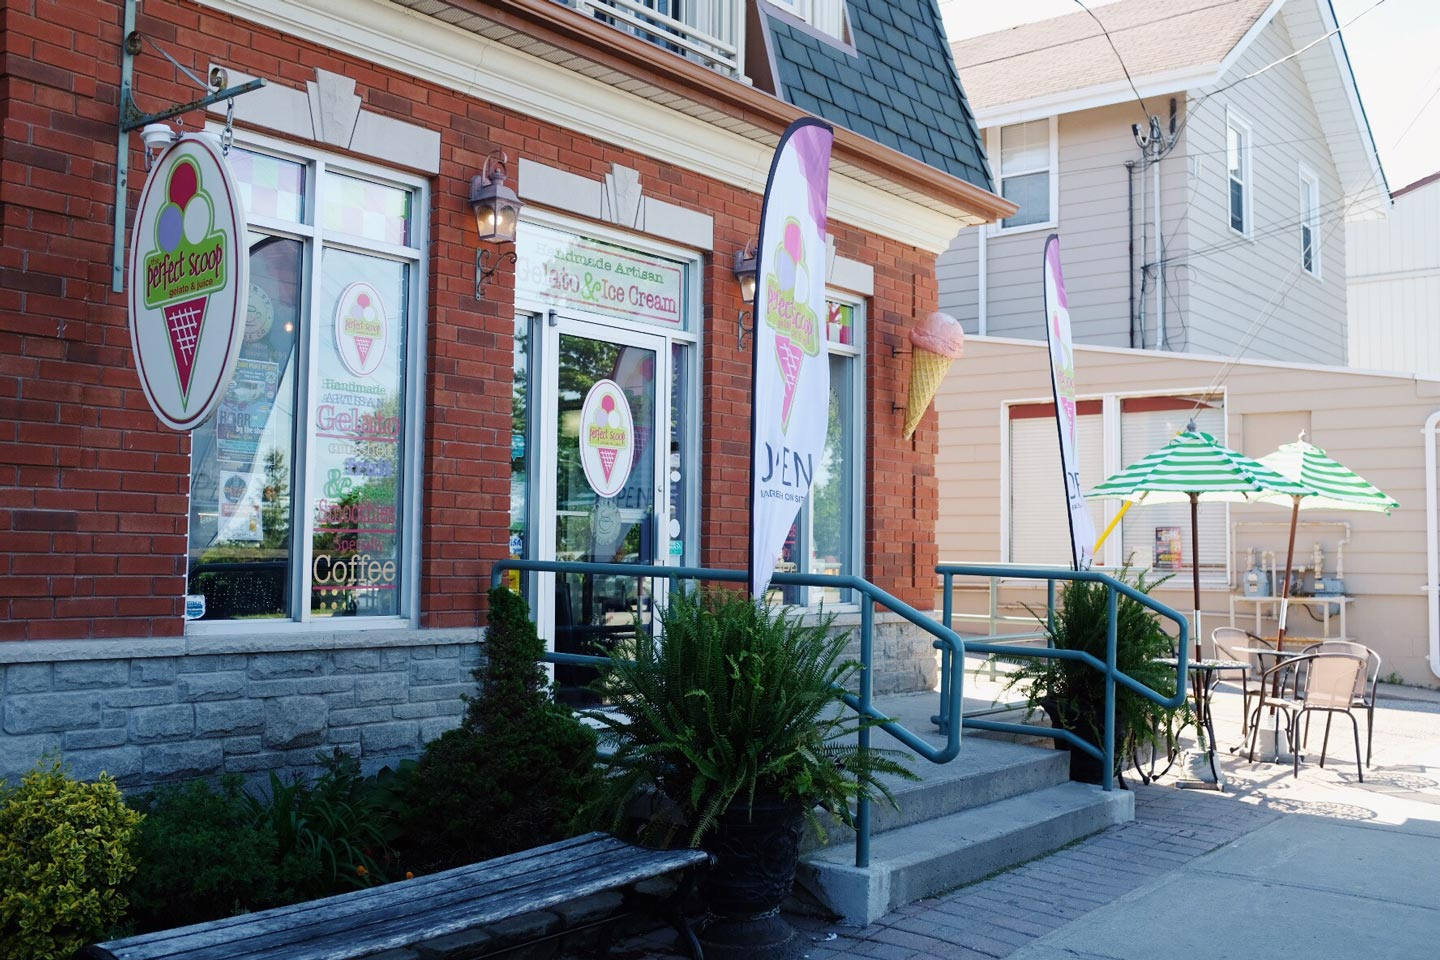 Perfect Scoop gelataria is located in Port Perry, Ontario